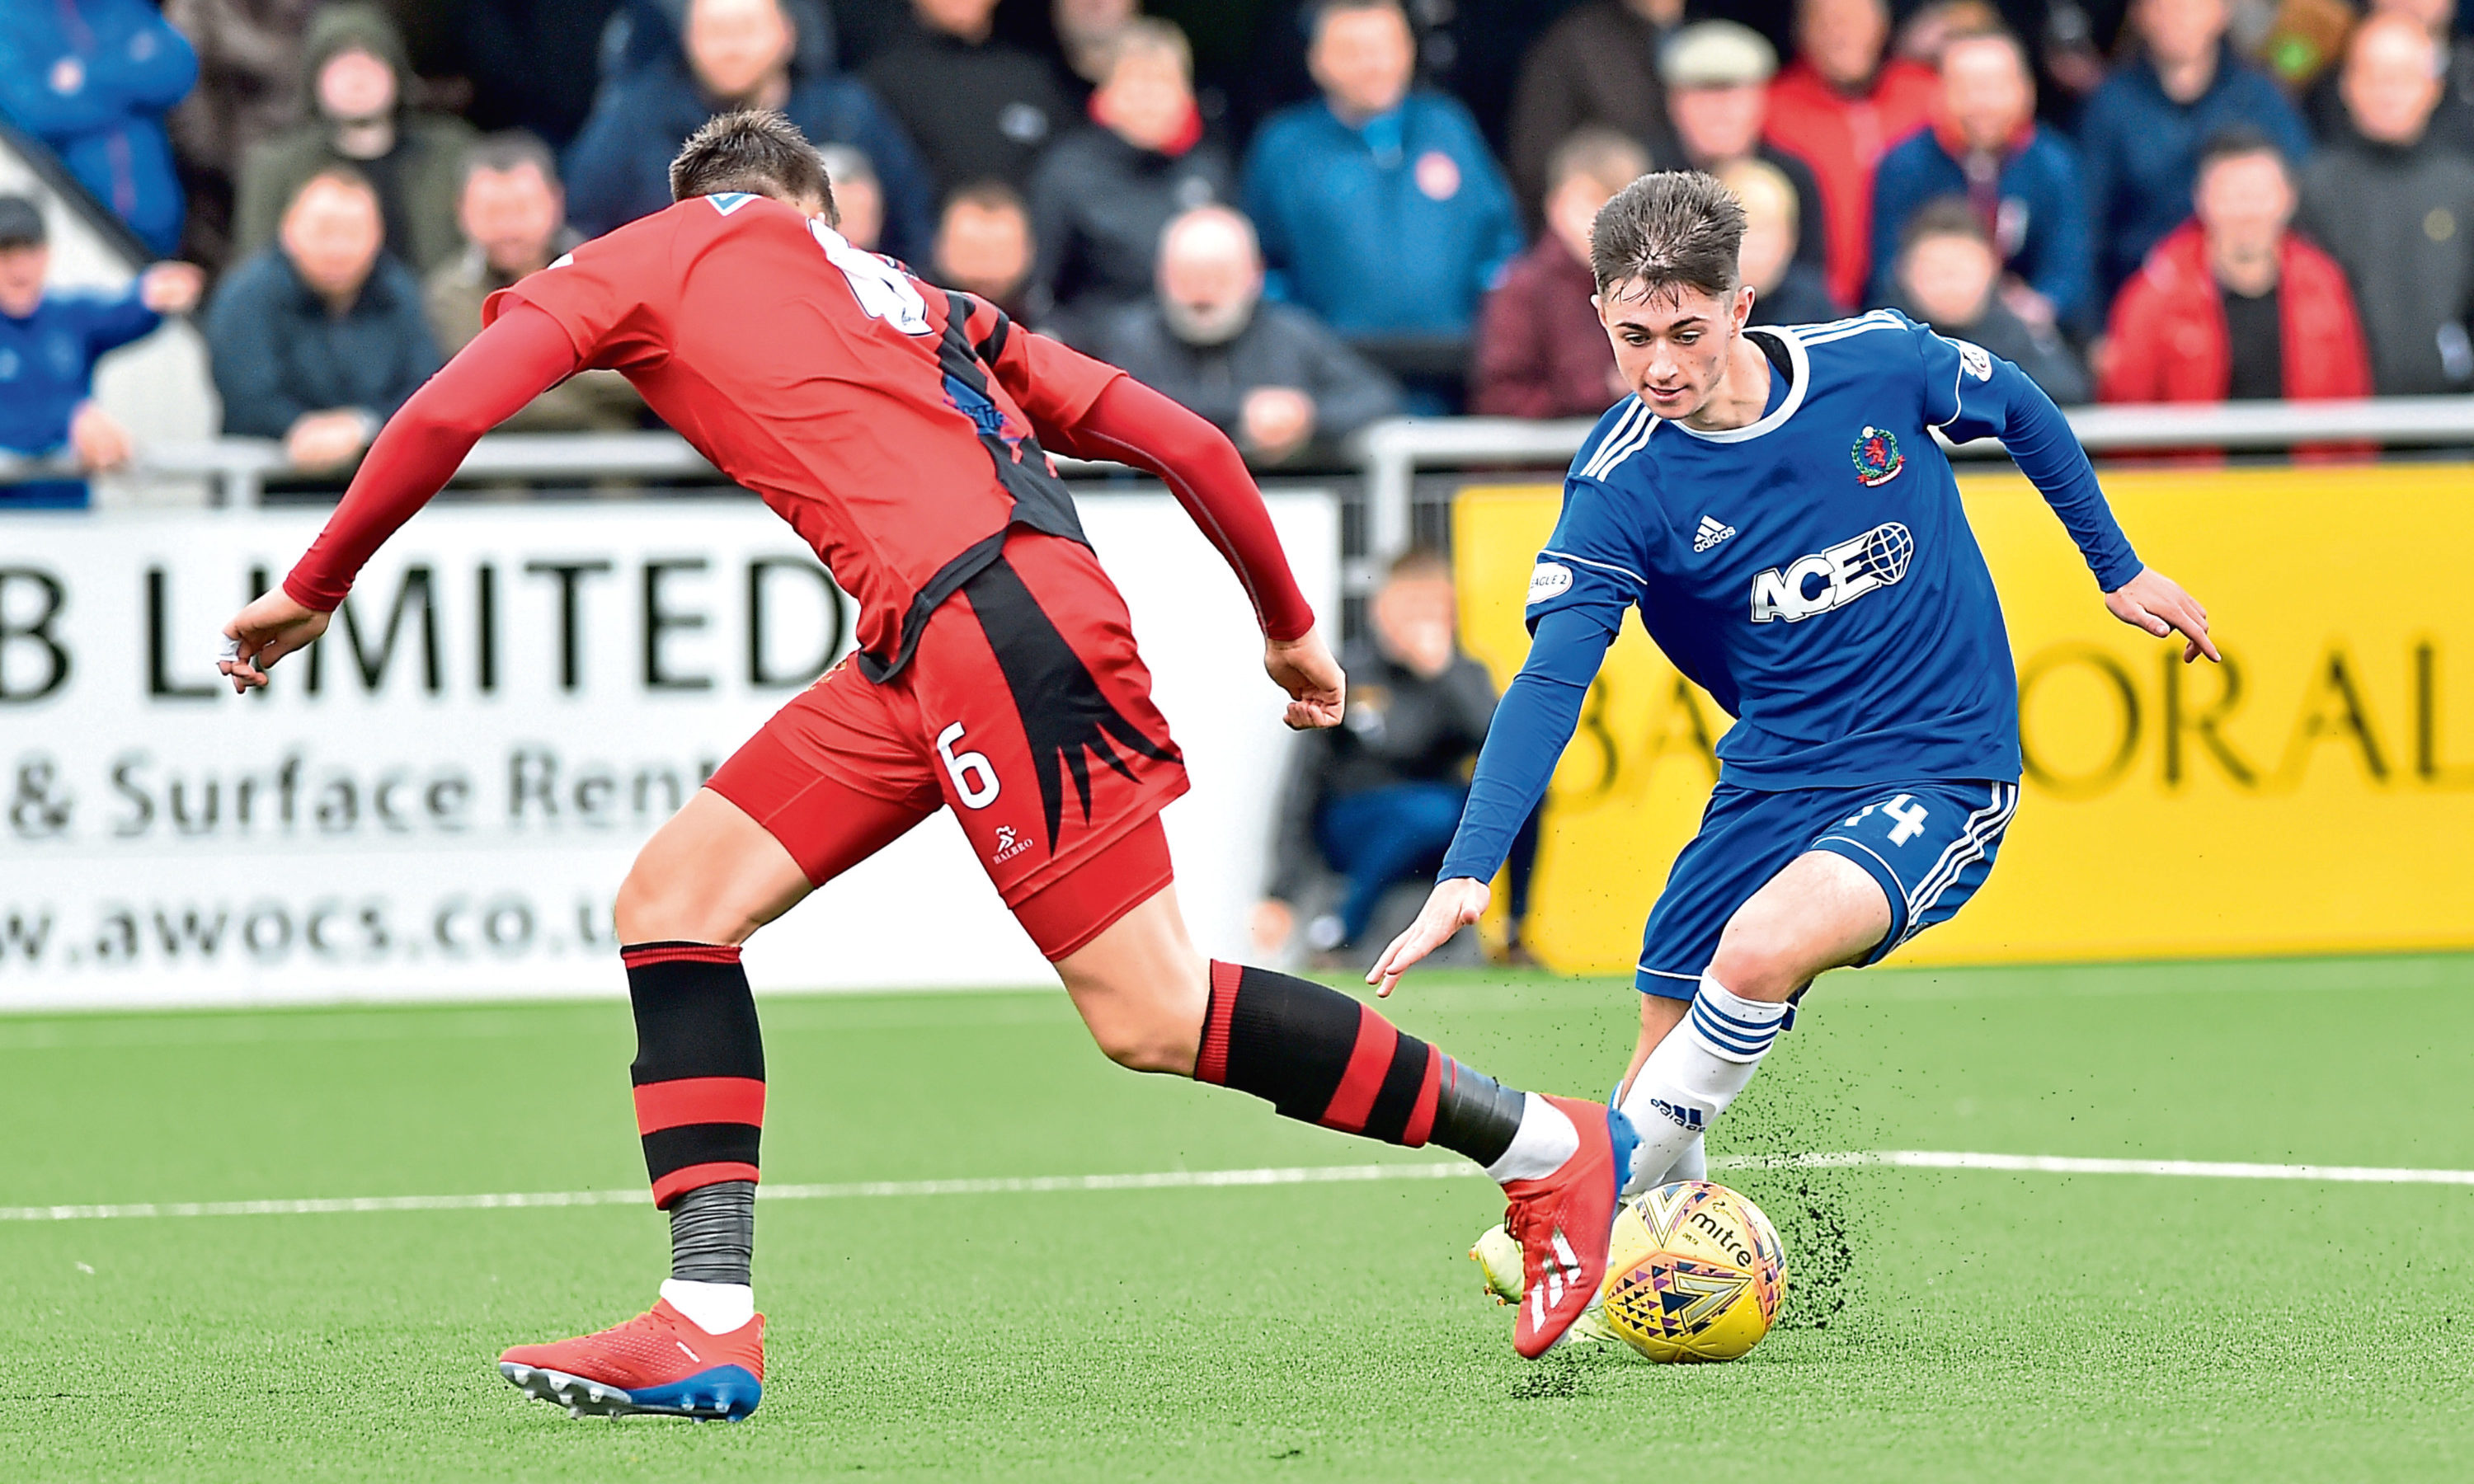 United's Declan Glass could have an impact in the second part of the season.